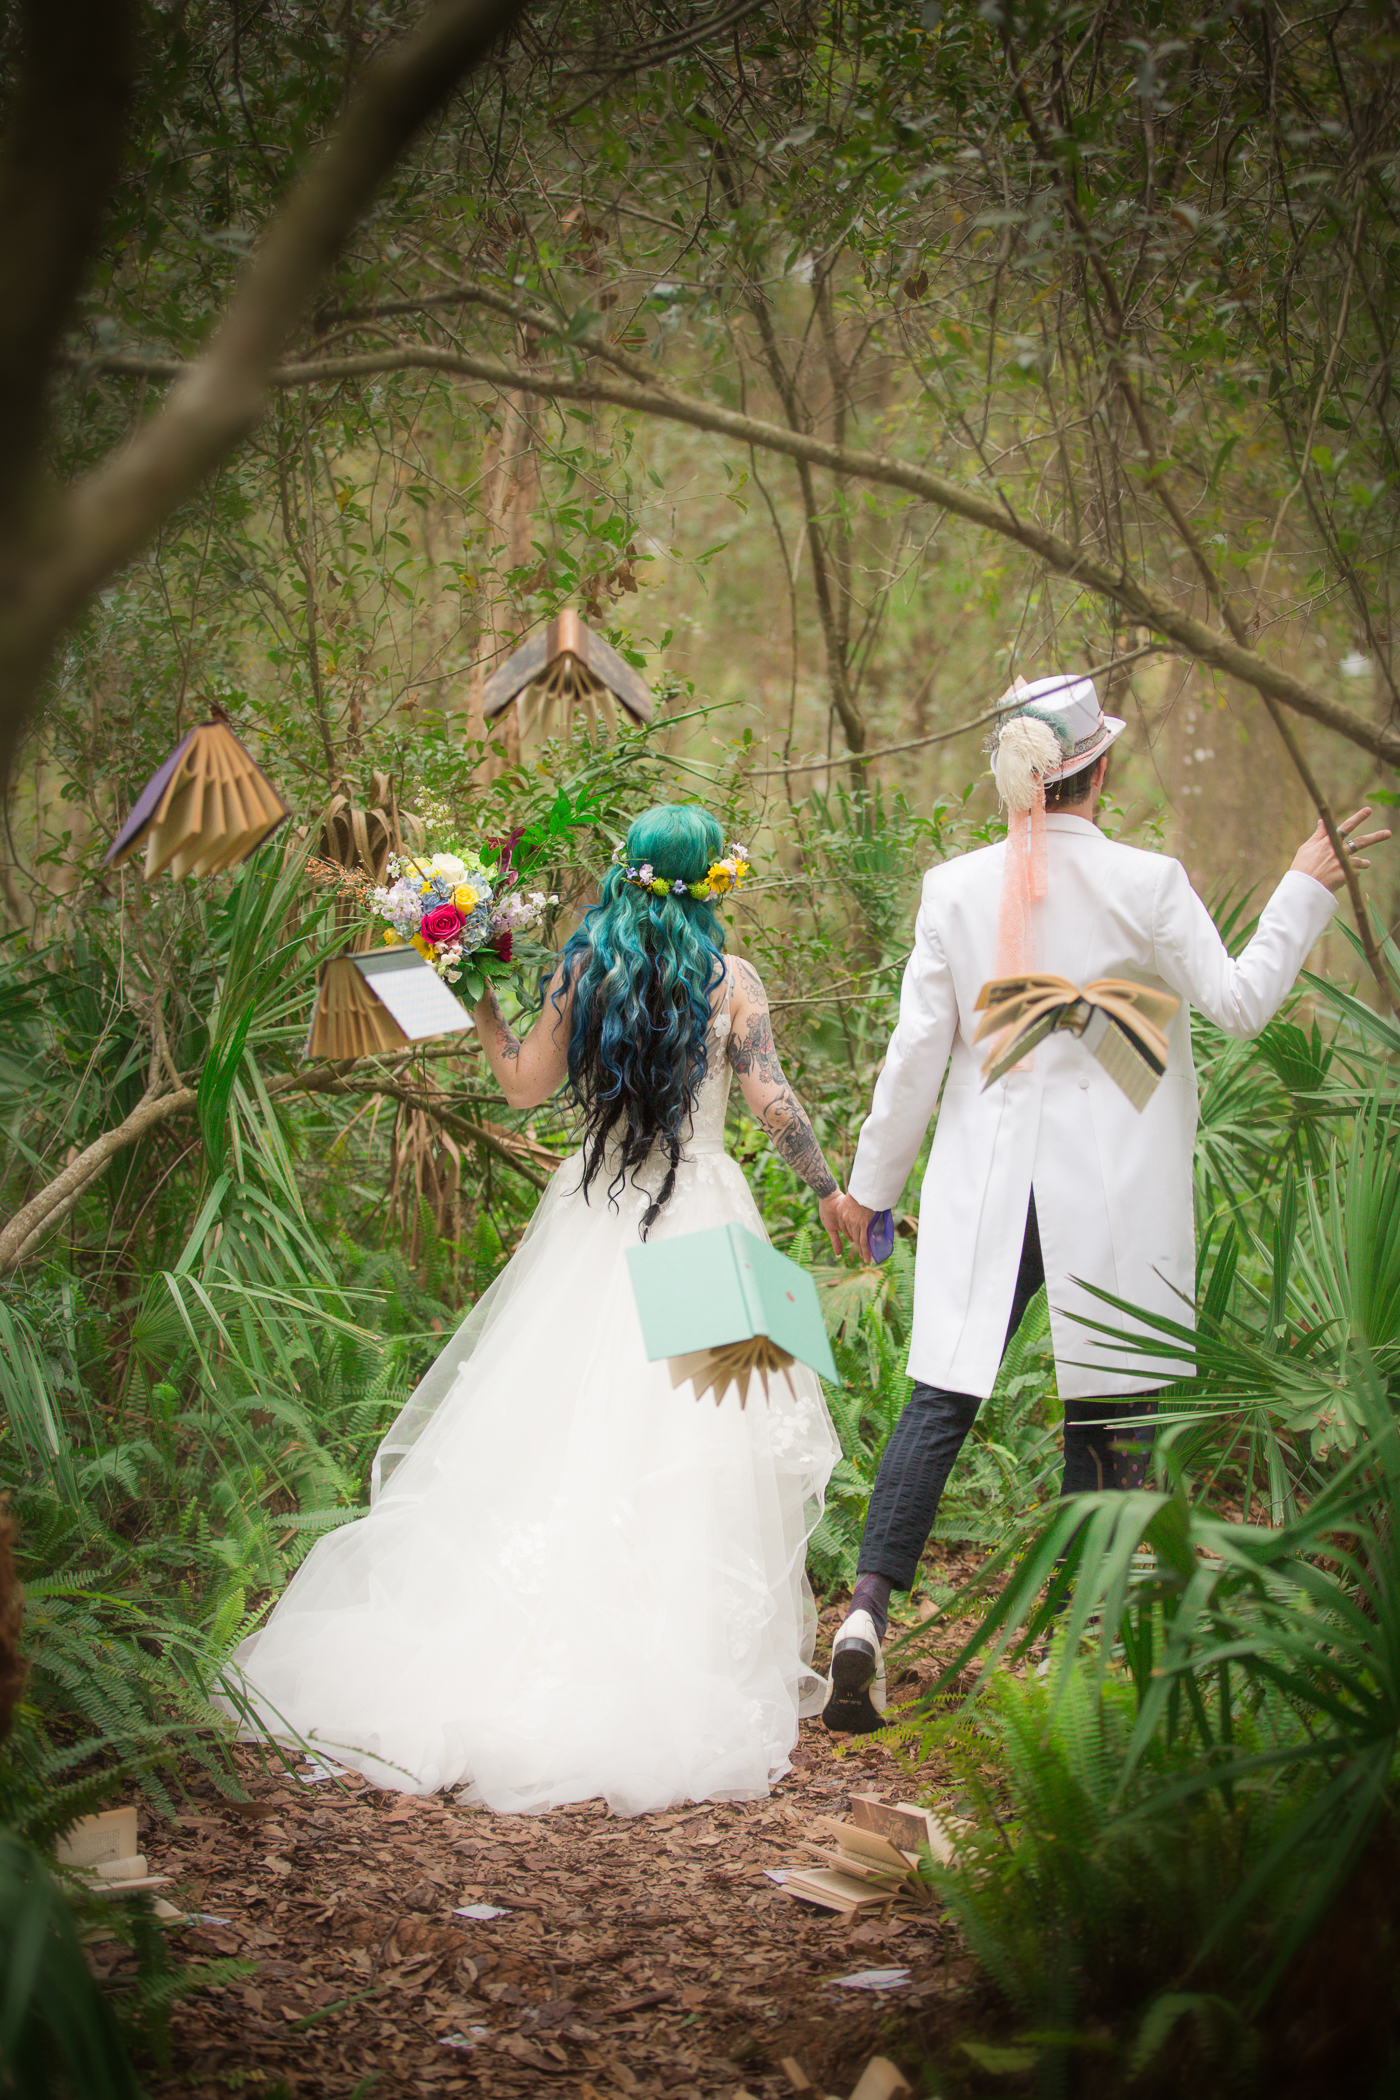 ...and they lived happily forever in Wonderland -